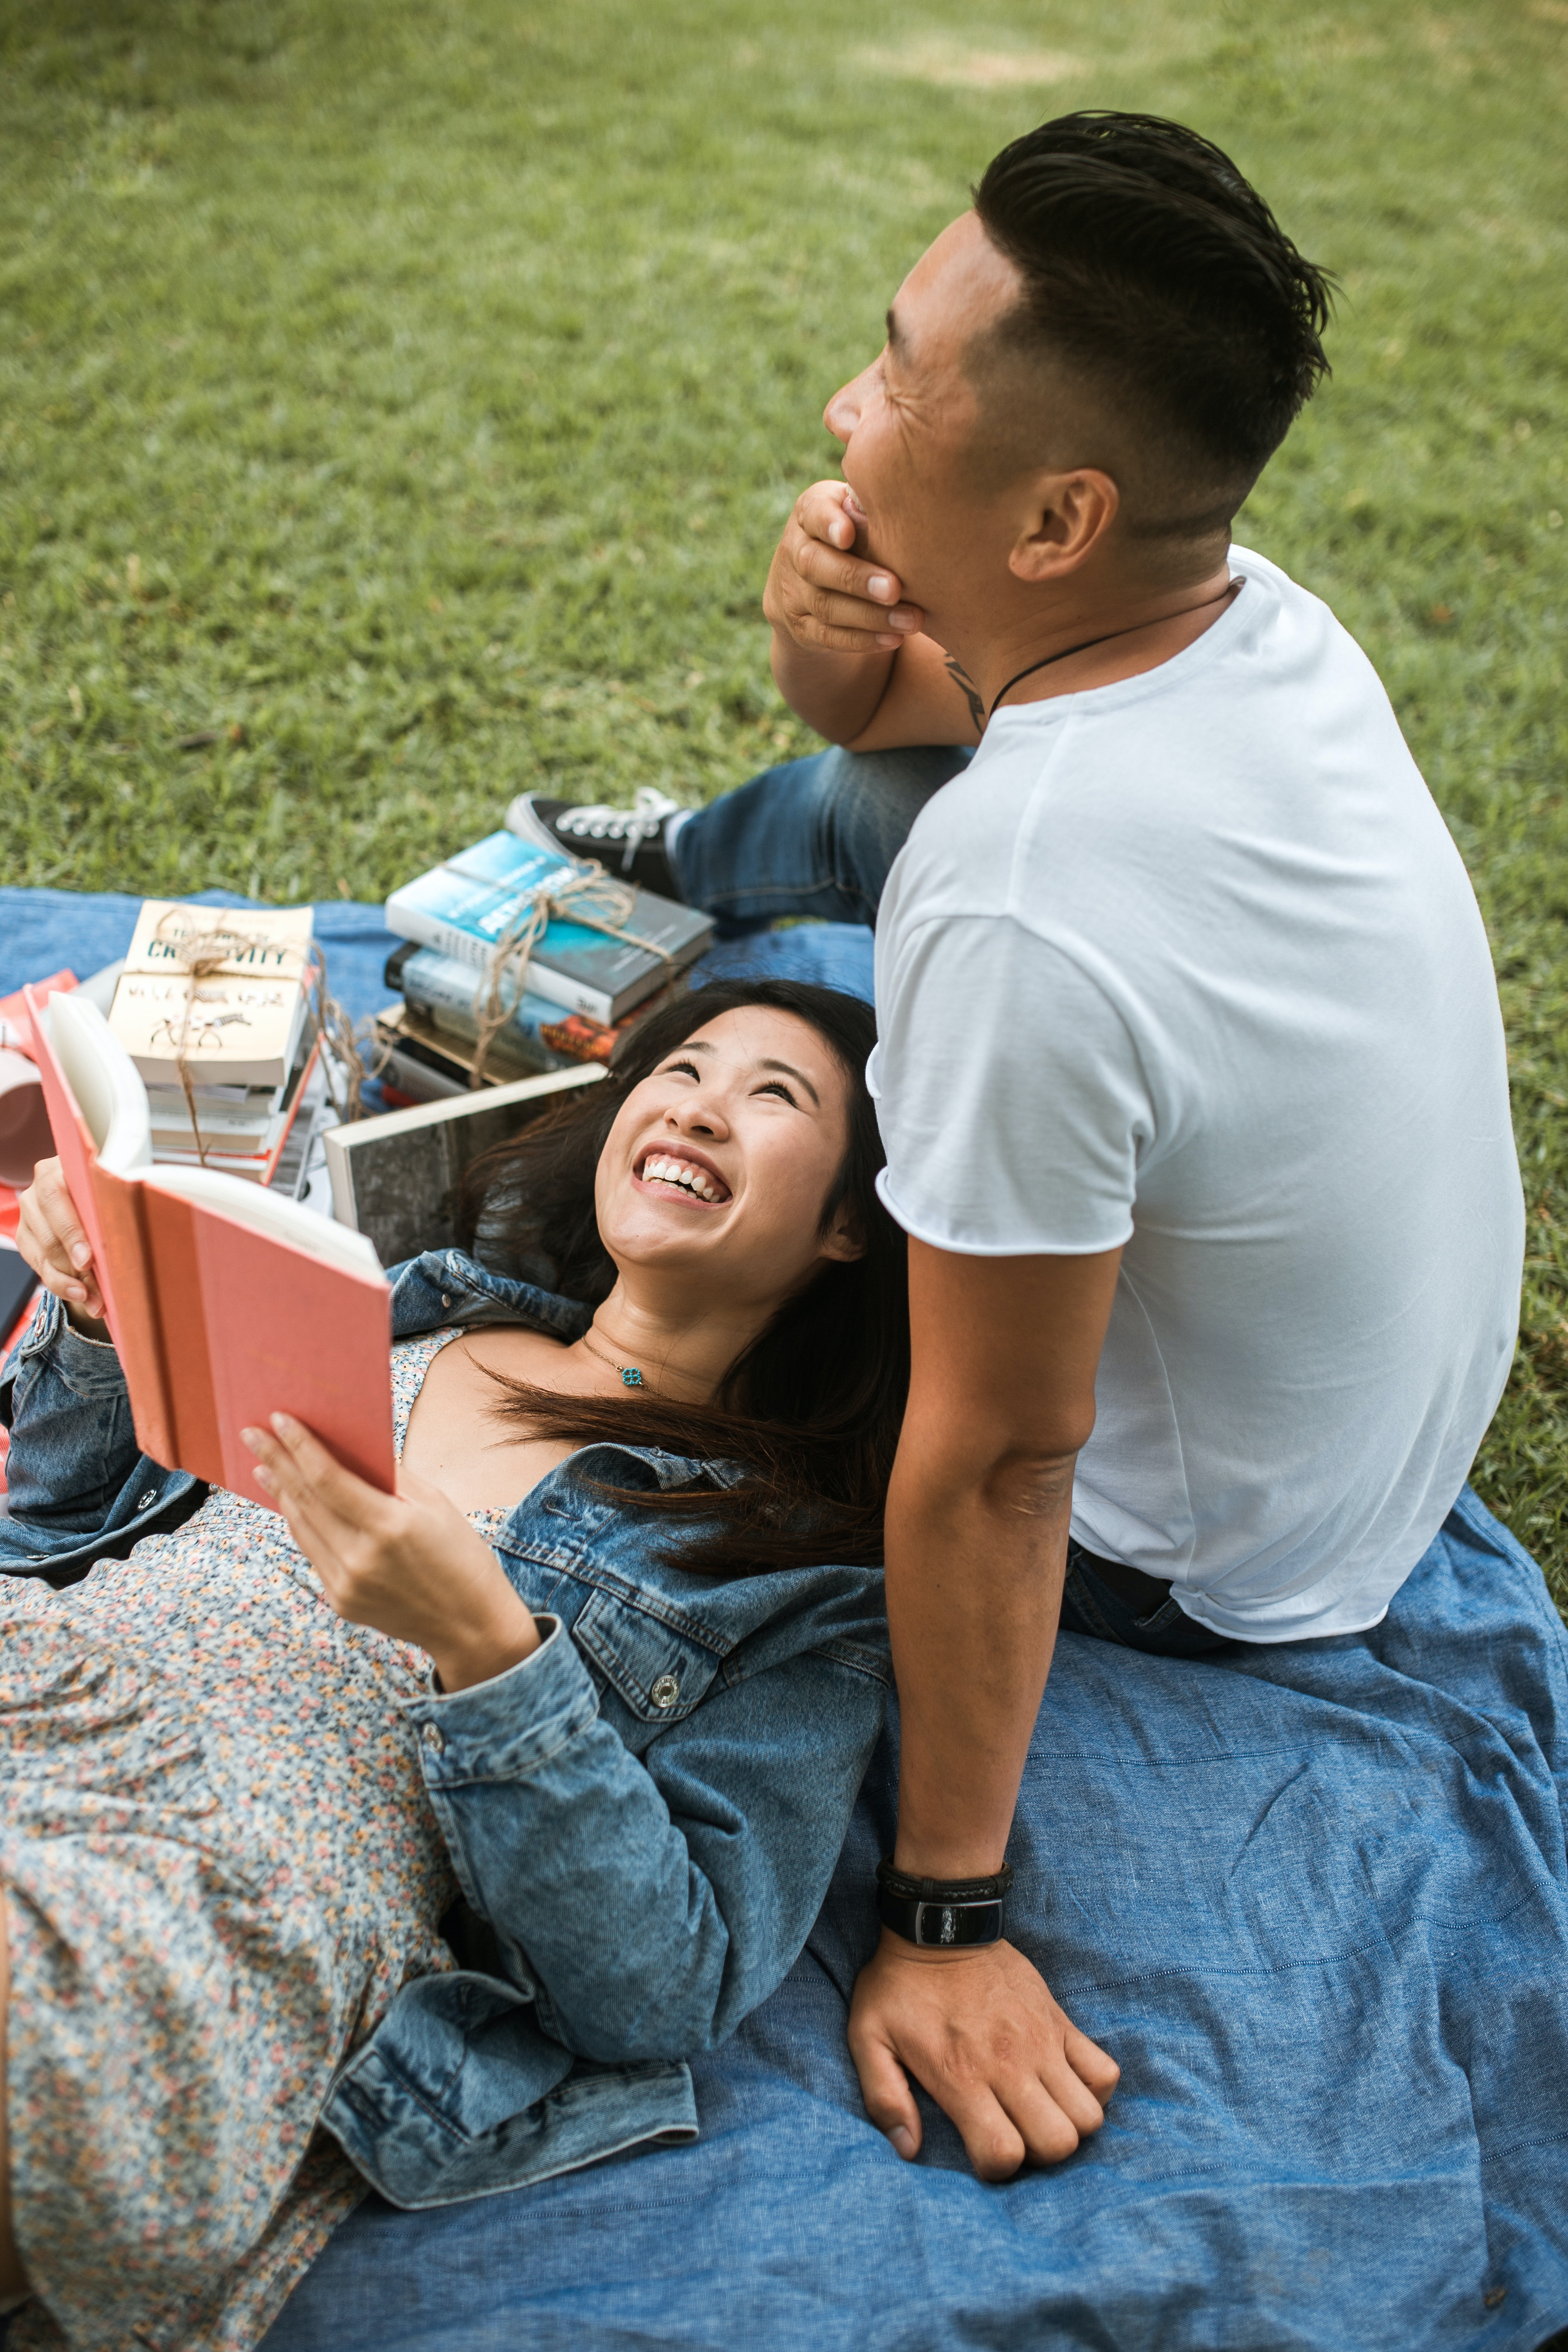 a man and a woman are lying on a picnic blanket. She is reading and looks happy, the man is looking into the distance, relaxed